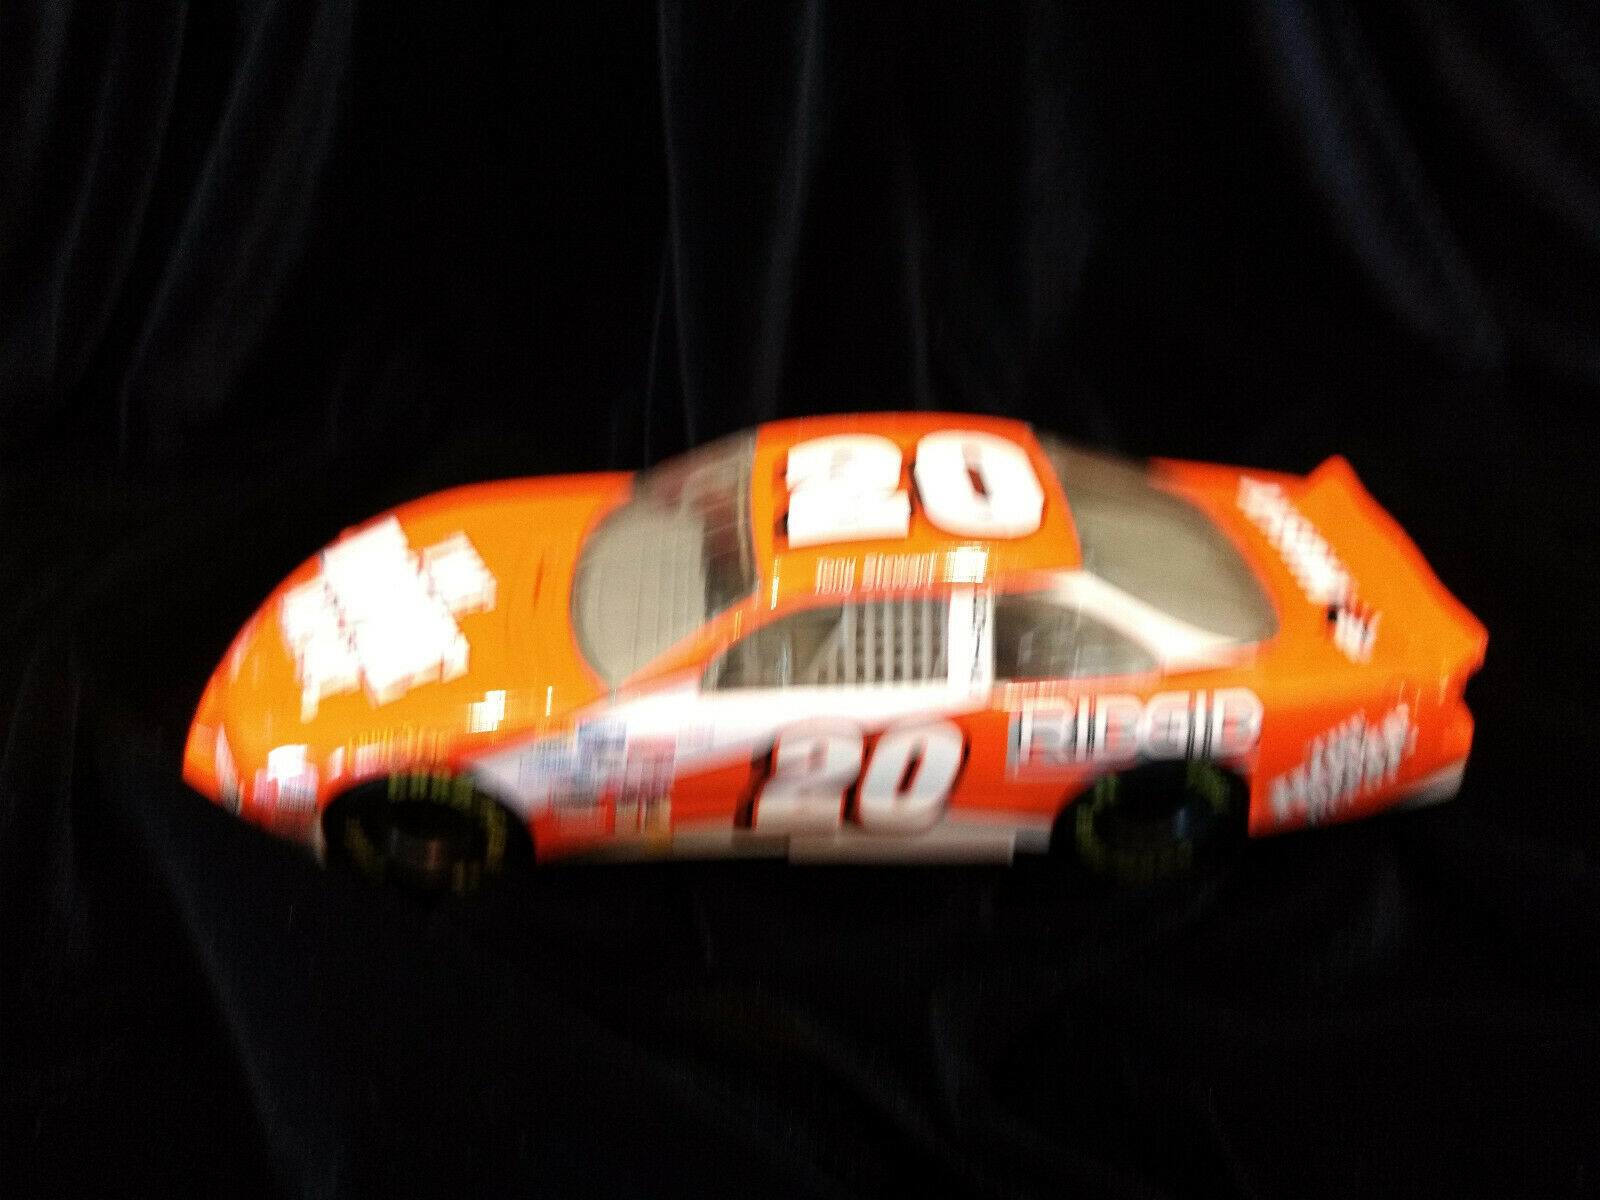 1999 TONY STEWART NASCAR HOME DEPOT 20 ACTION AP 1:24 SCALE DIECAST CAR